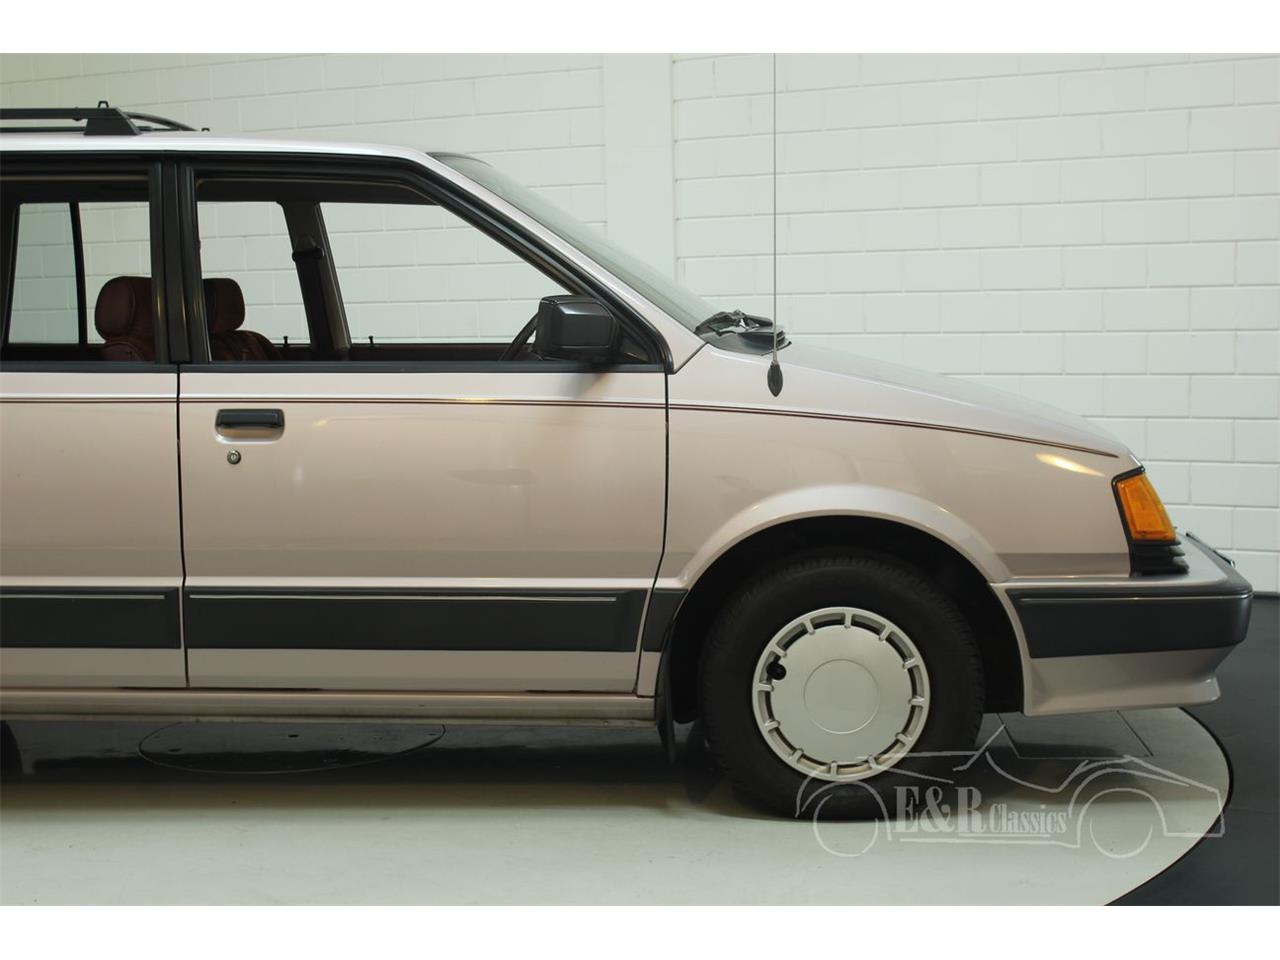 Large Picture of '87 Dodge Colt located in Waalwijk [nl] Pays-Bas - $16,900.00 - PVV4